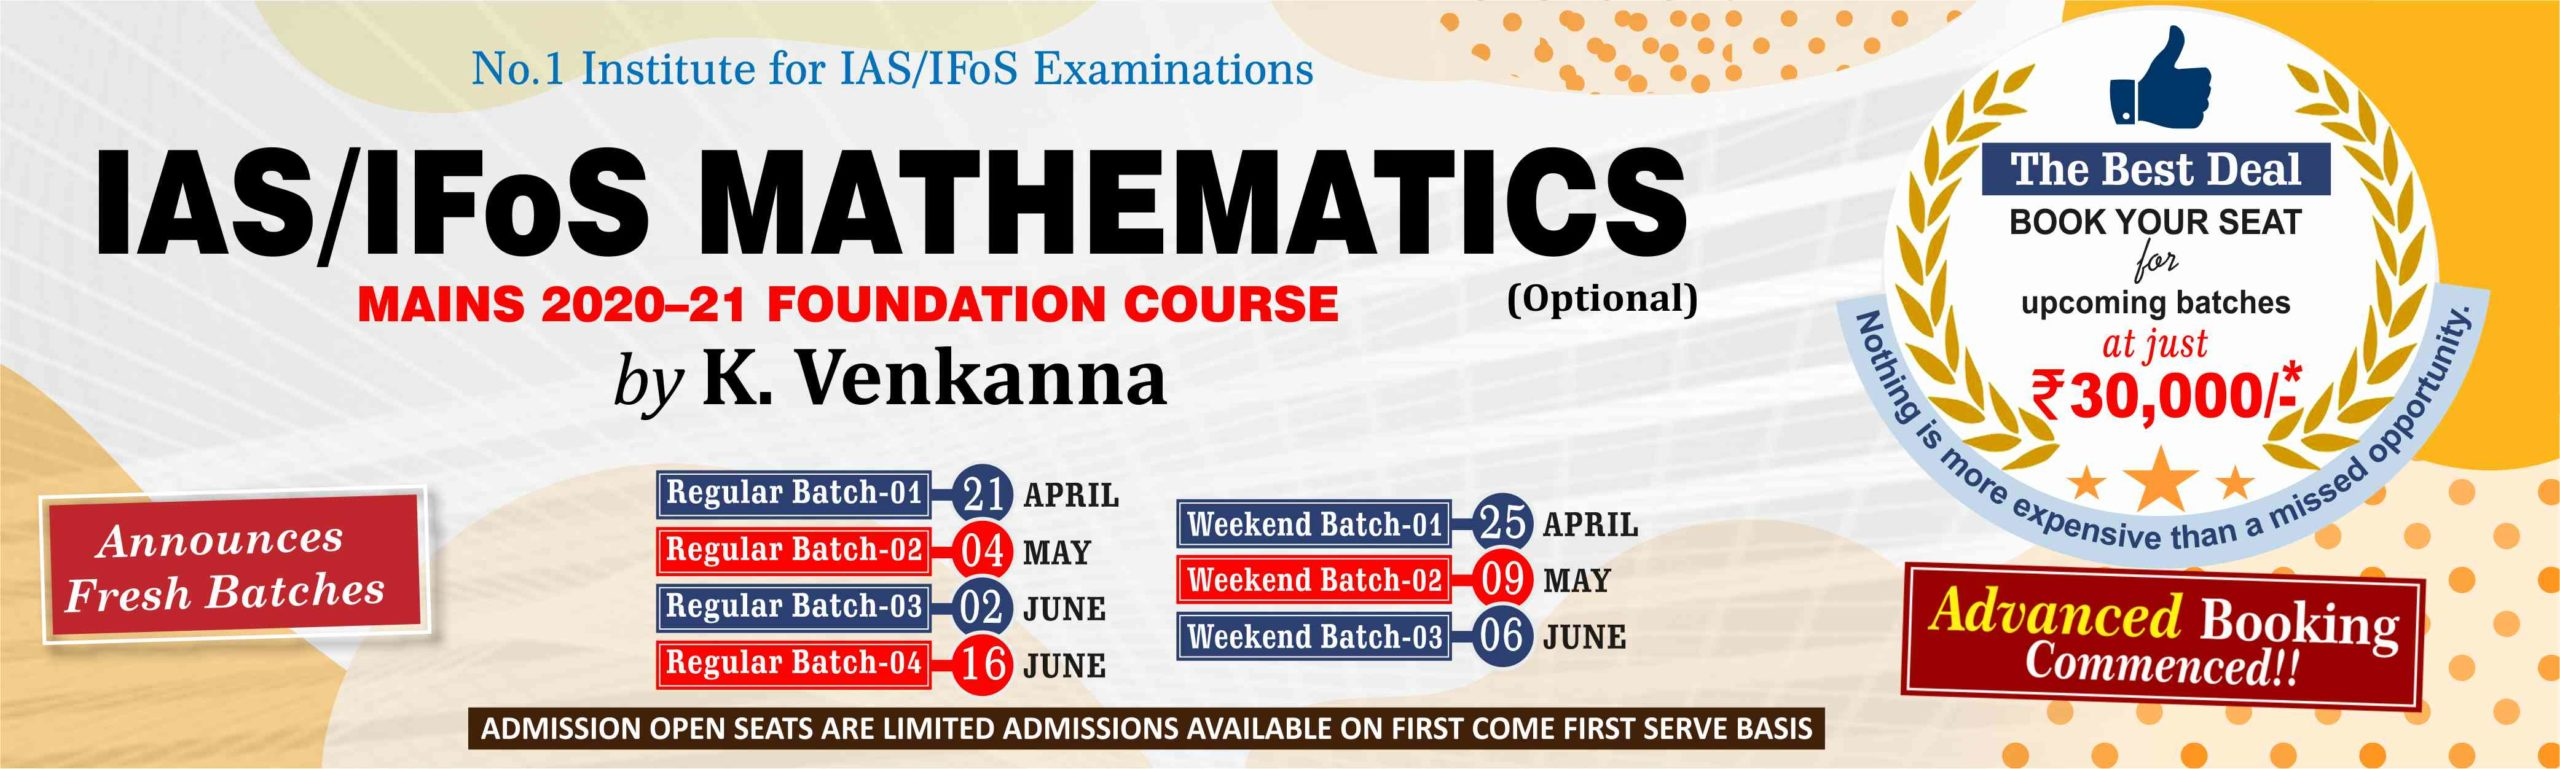 Mathematics optional foundation course 2020-21